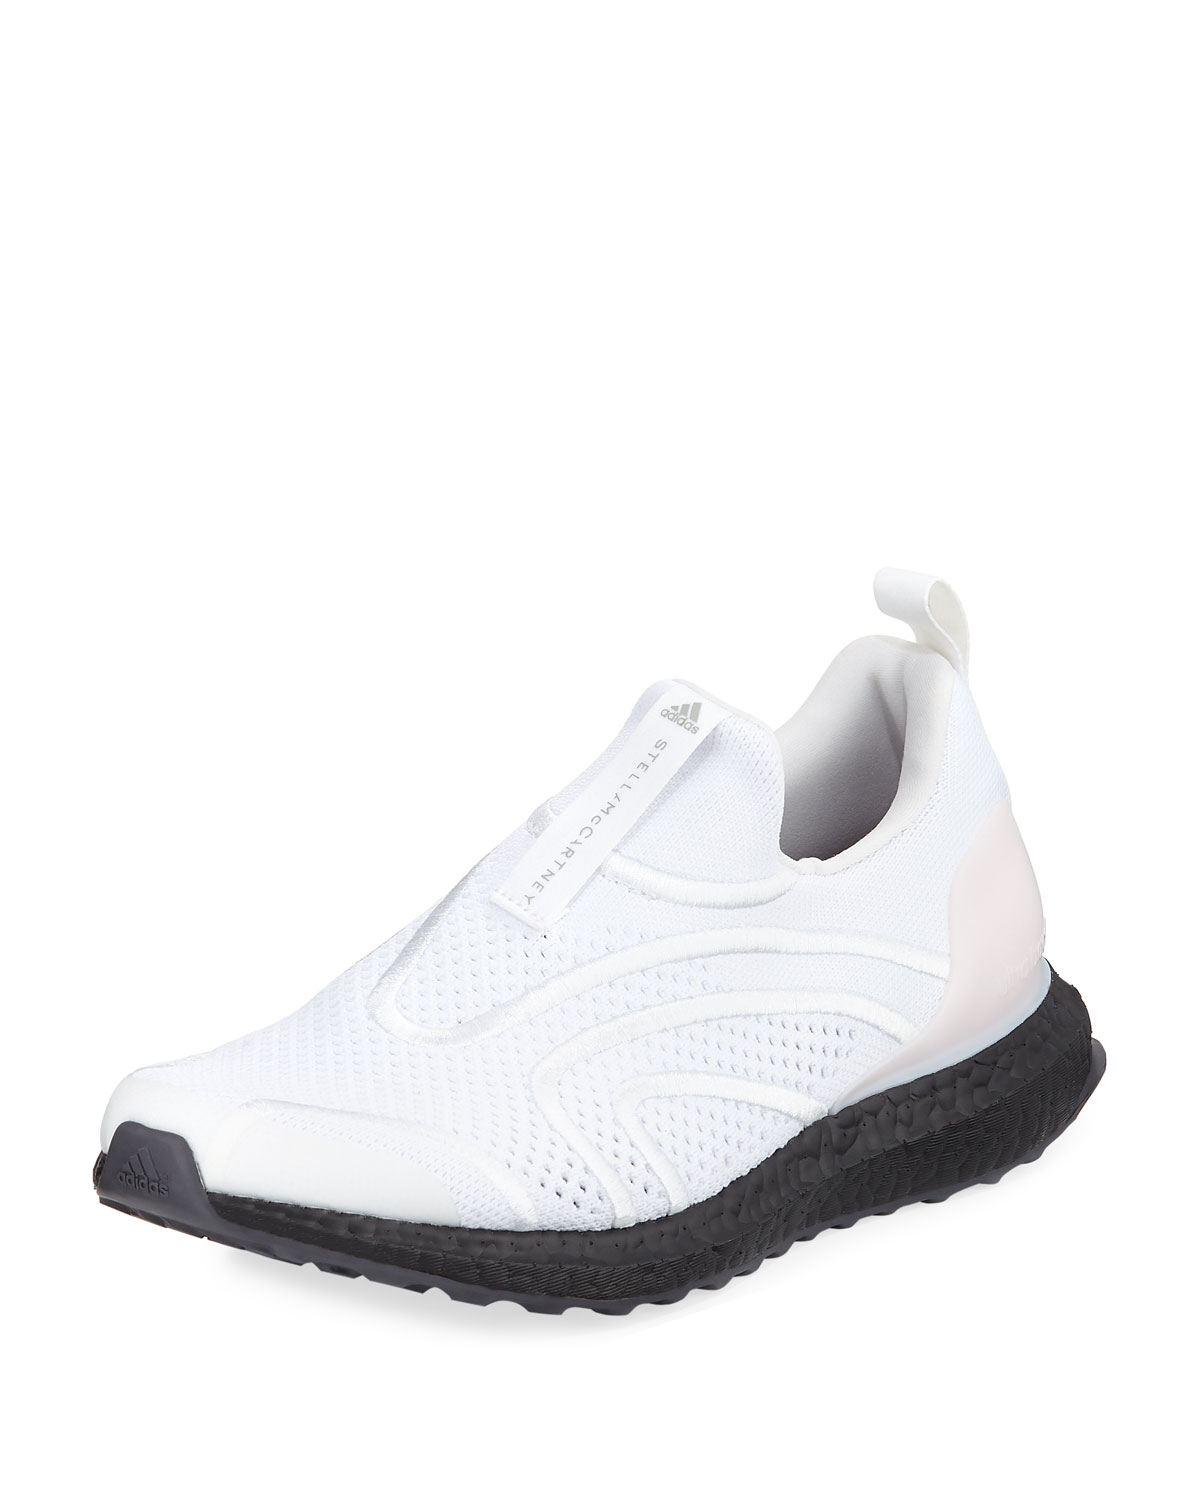 24741a2b7df5c adidas by Stella McCartney Ultra Boost Uncaged Fabric Sneakers ...